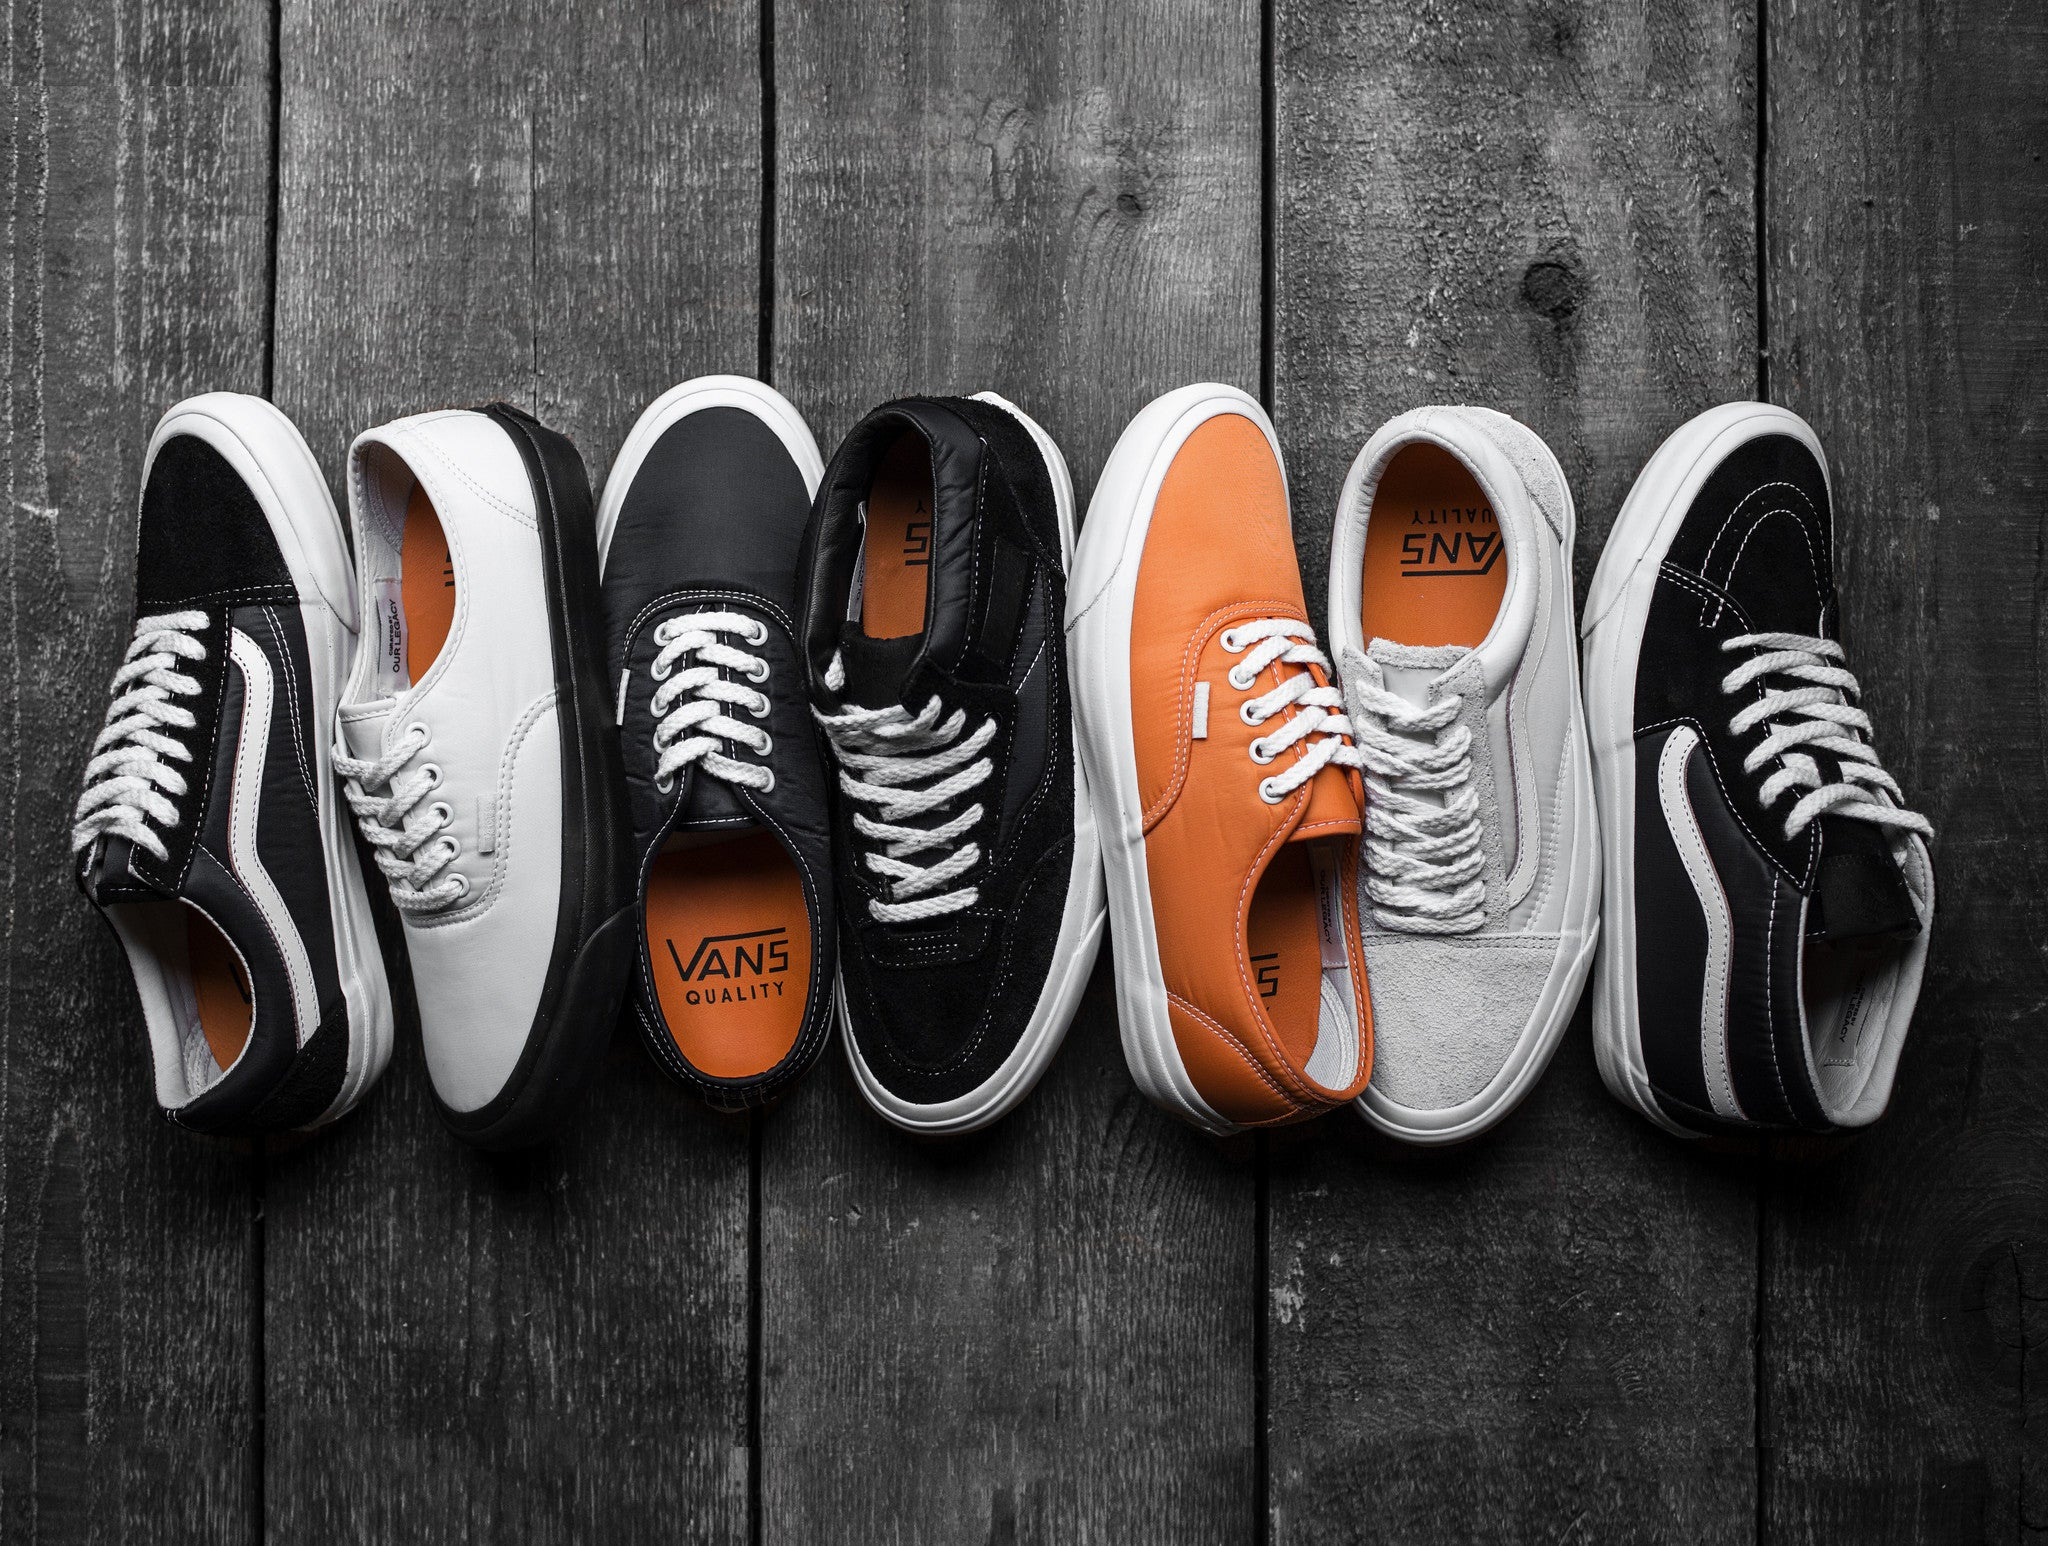 Vault by Vans Curated by Our Legacy